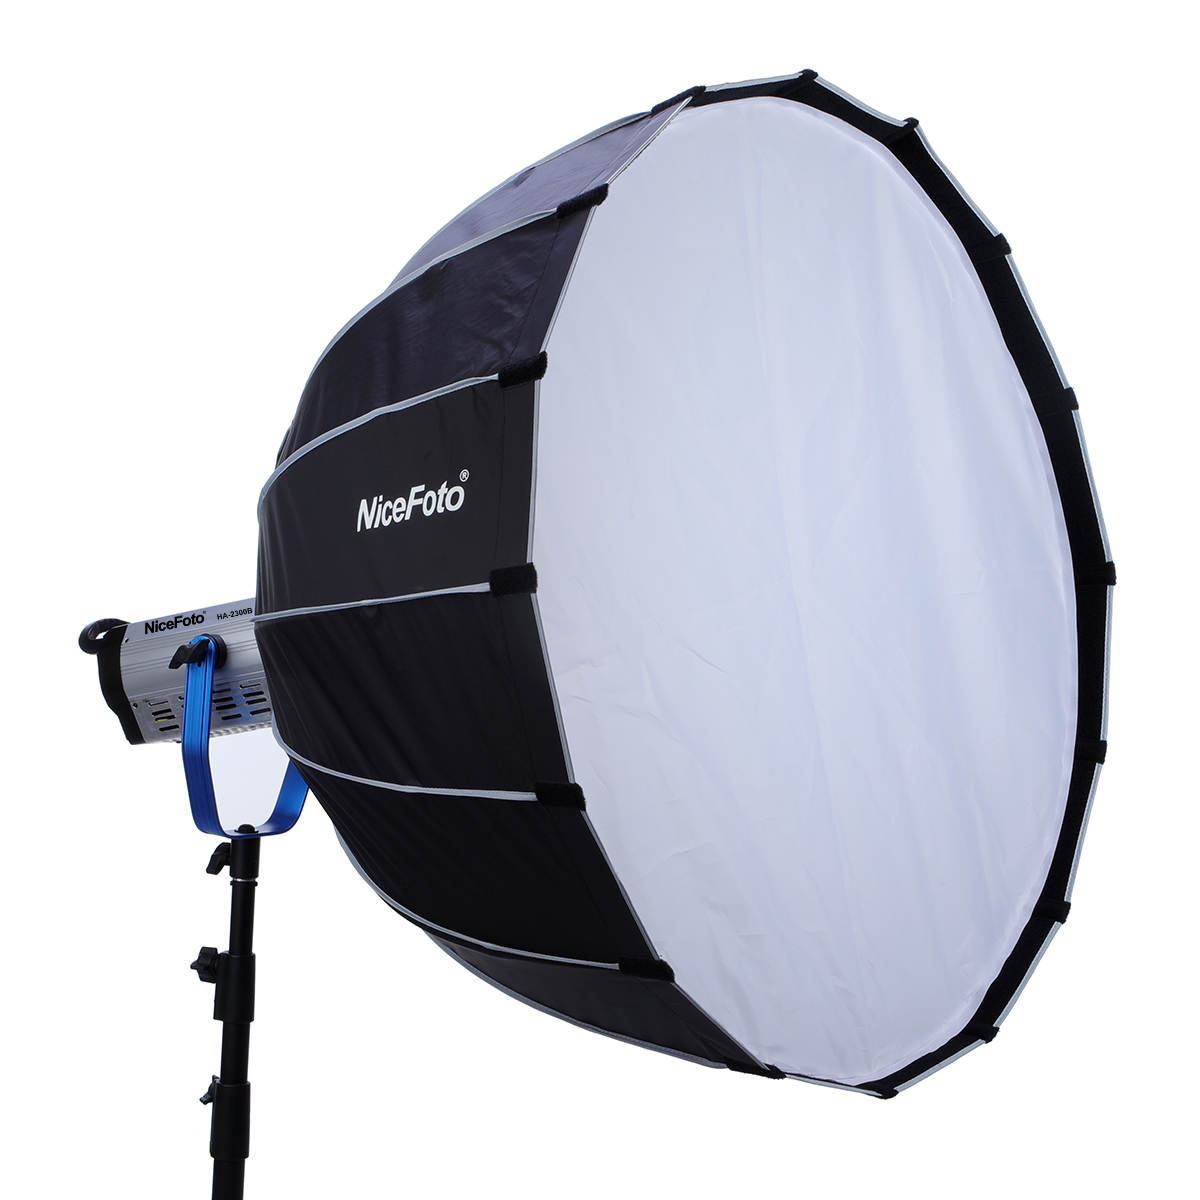 NiceFoto LED Parabolic softbox with grid Quick set-up deep softbox 90cm for LED light Umbrella frame softbox with grid